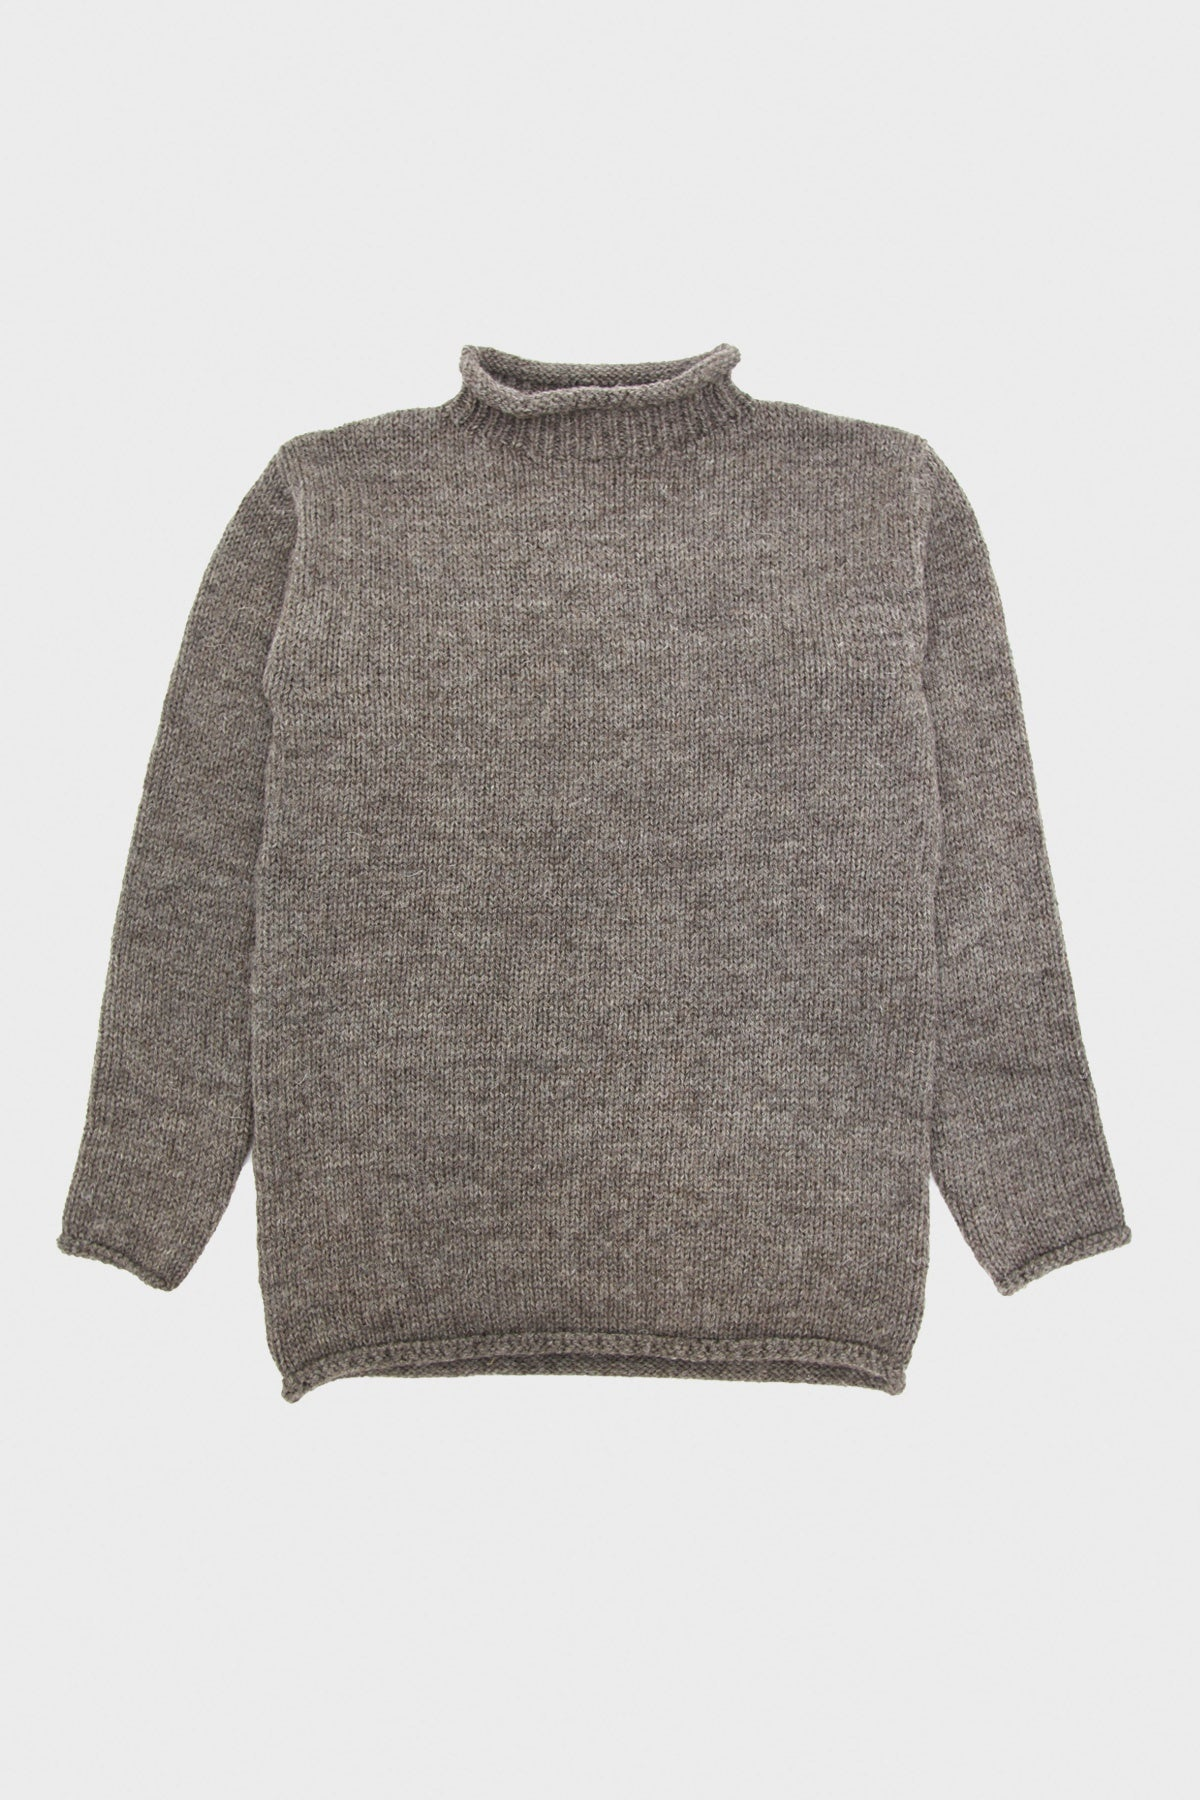 Full Count - Old Fisherman Wool Sweater - Heather Brown - Canoe Club